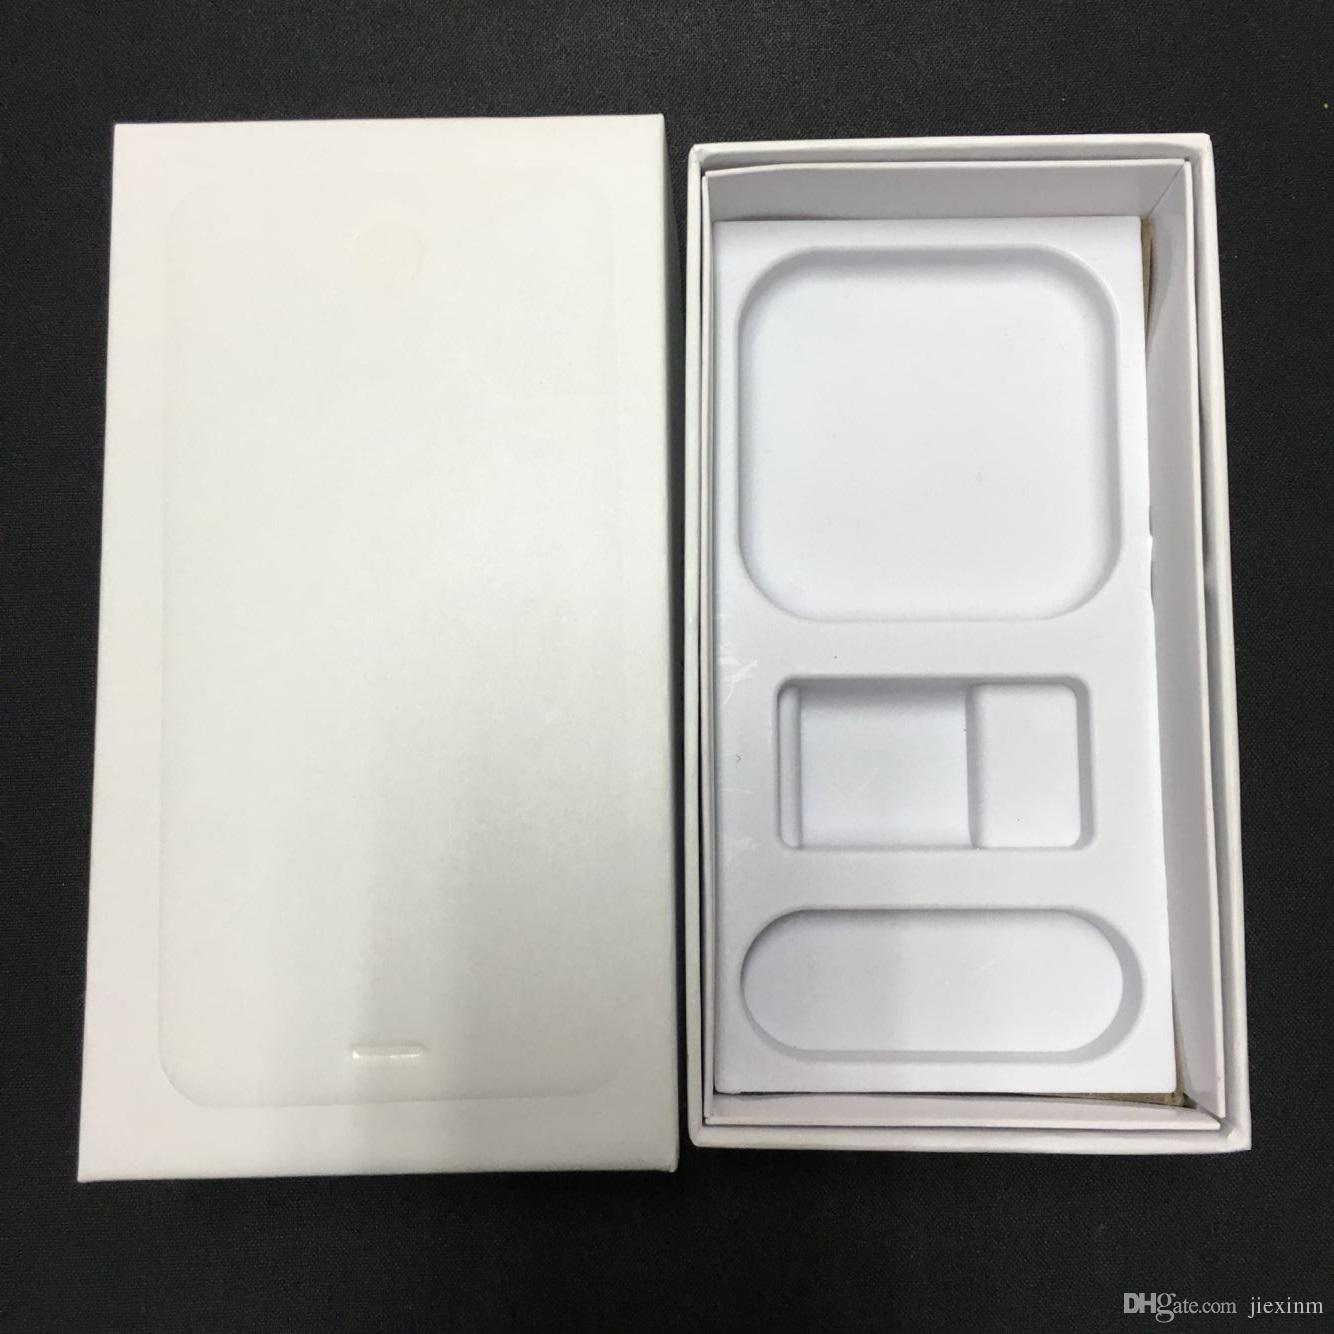 Wholesale Factory Direct Cell Phone Box Empty Boxes Retail Box for Iphone 5 6 6s 6s plus 7 7s plus with Full Accessories US plug